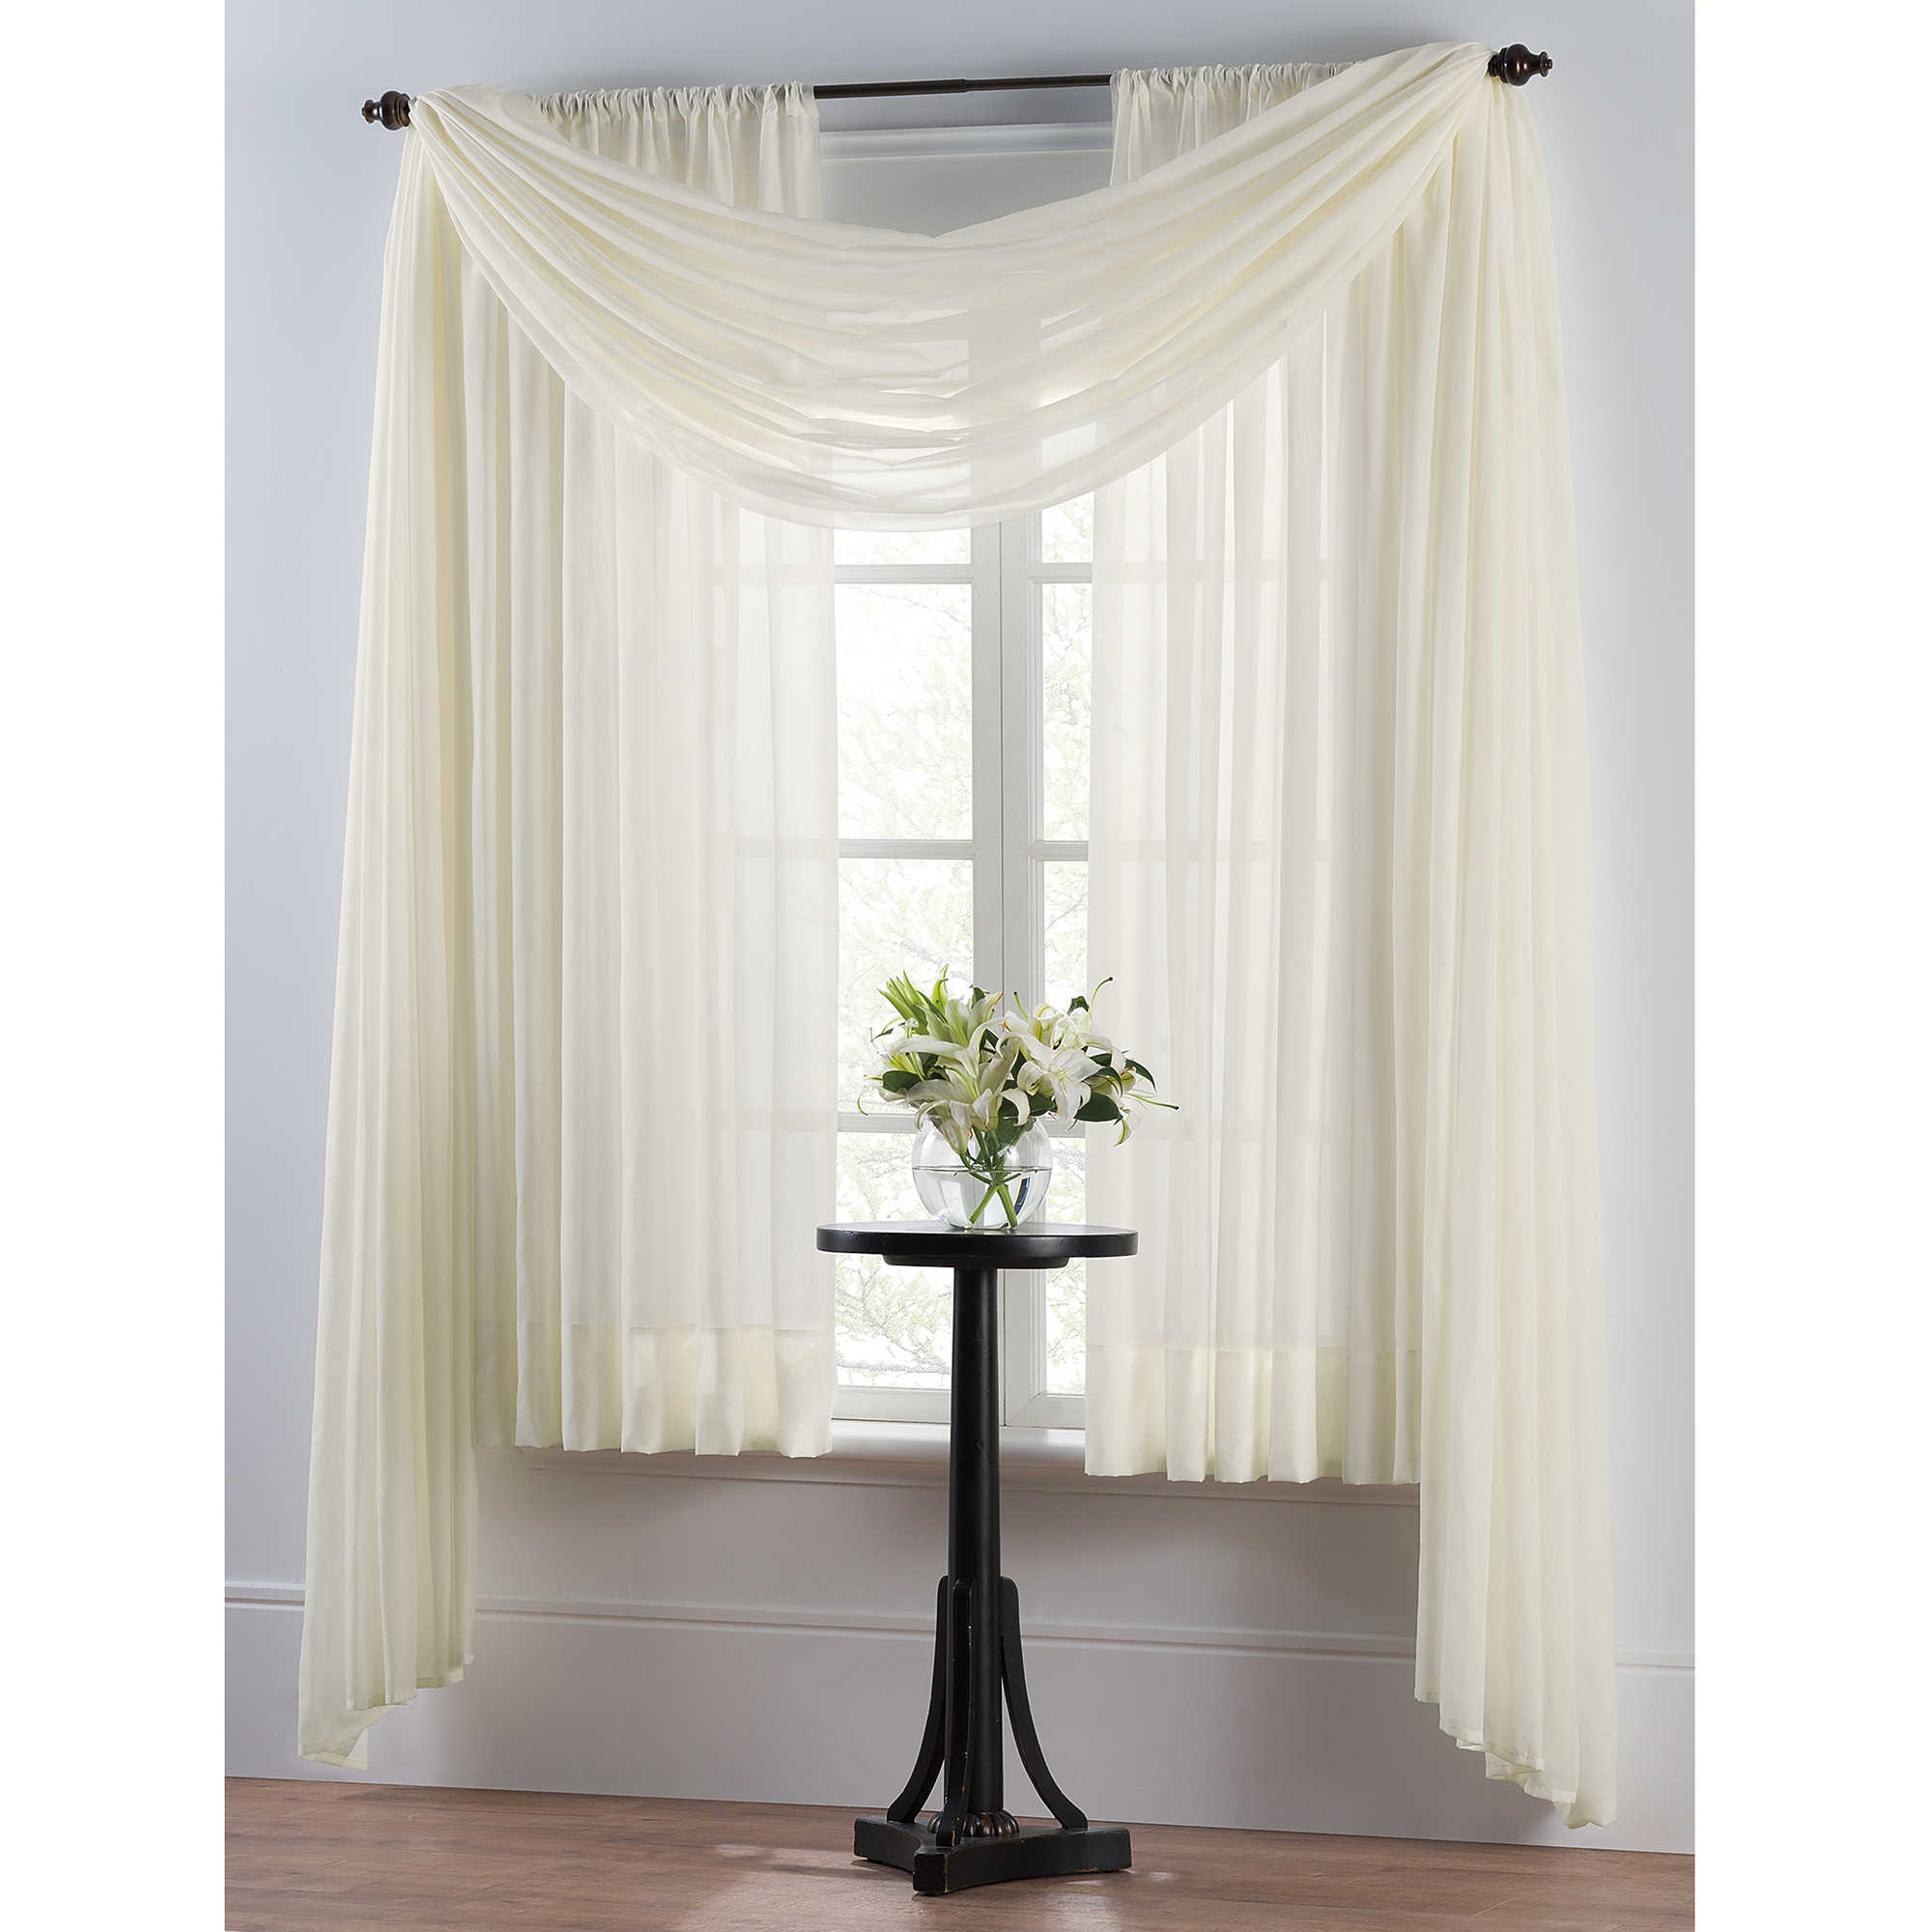 White And Long Winter Curtain With Standing Long Table